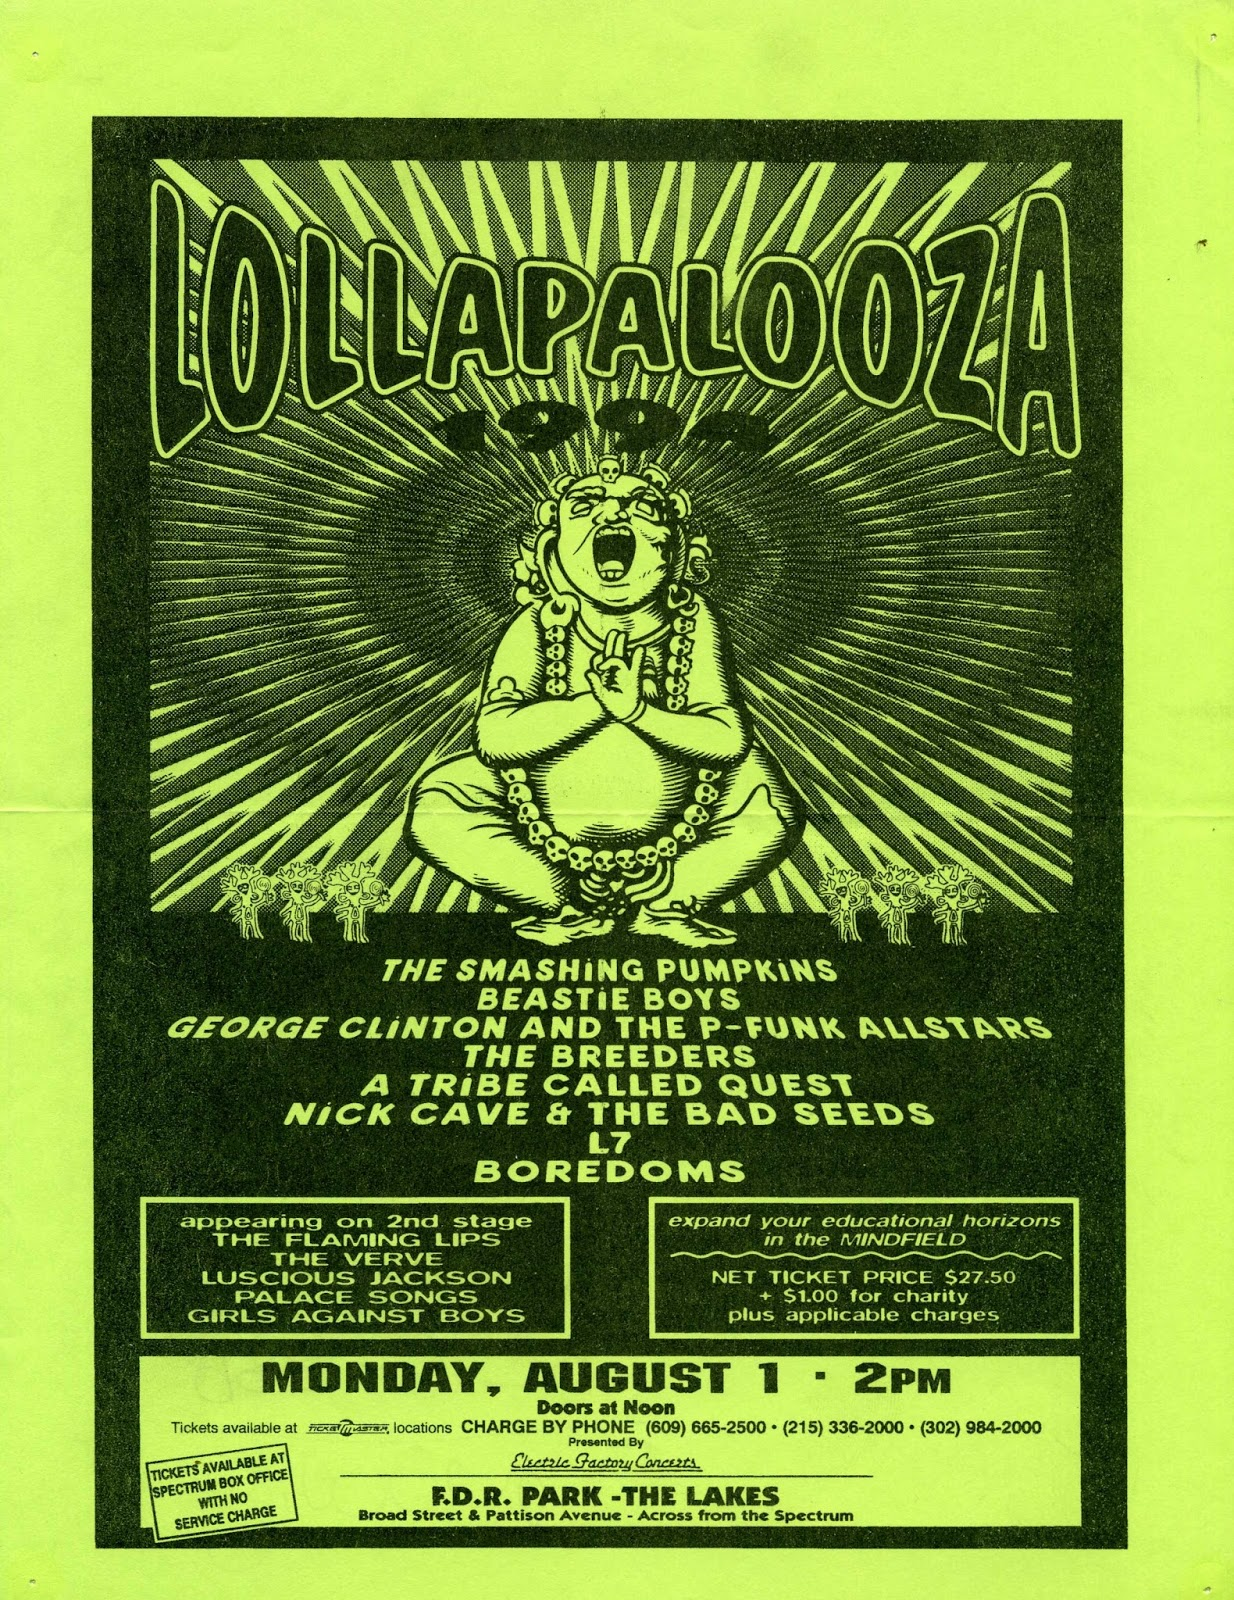 Lollapalooza 94 - Philly, PA